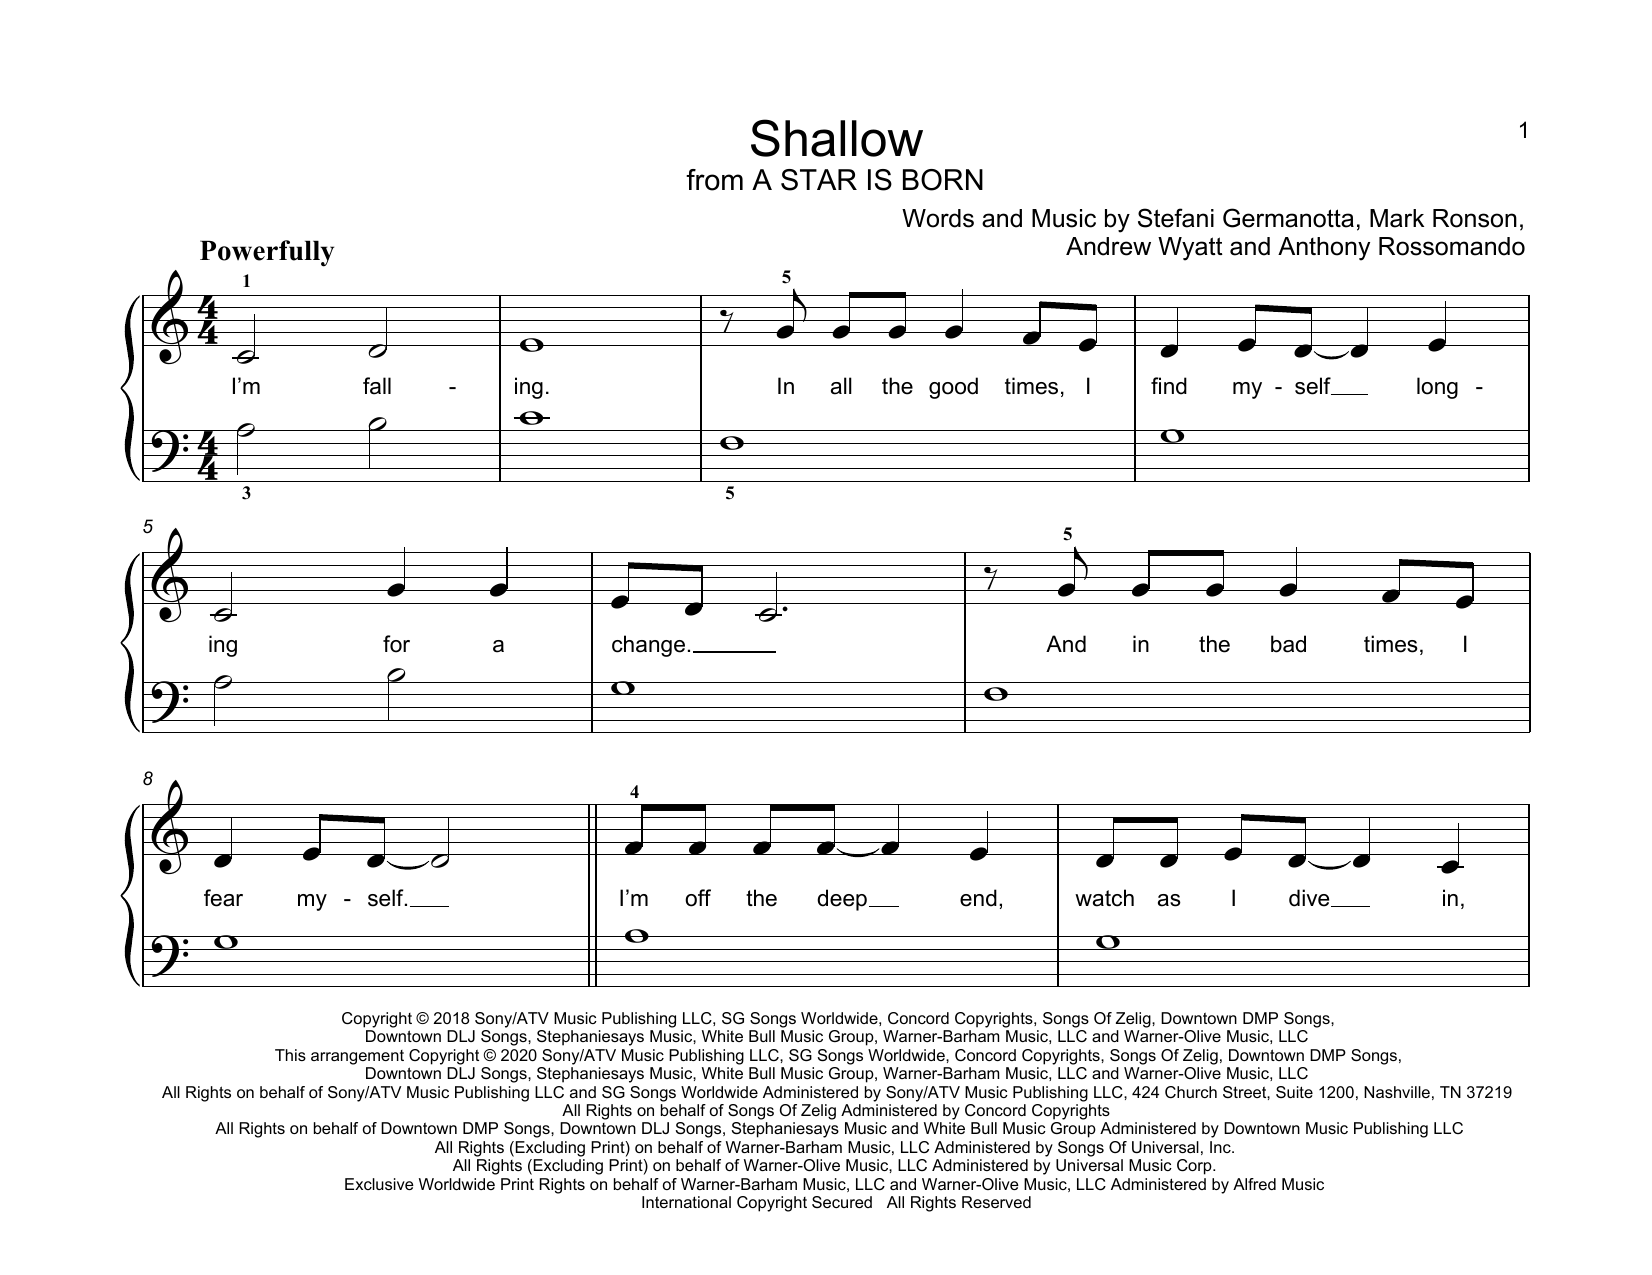 Shallow (from A Star Is Born) sheet music